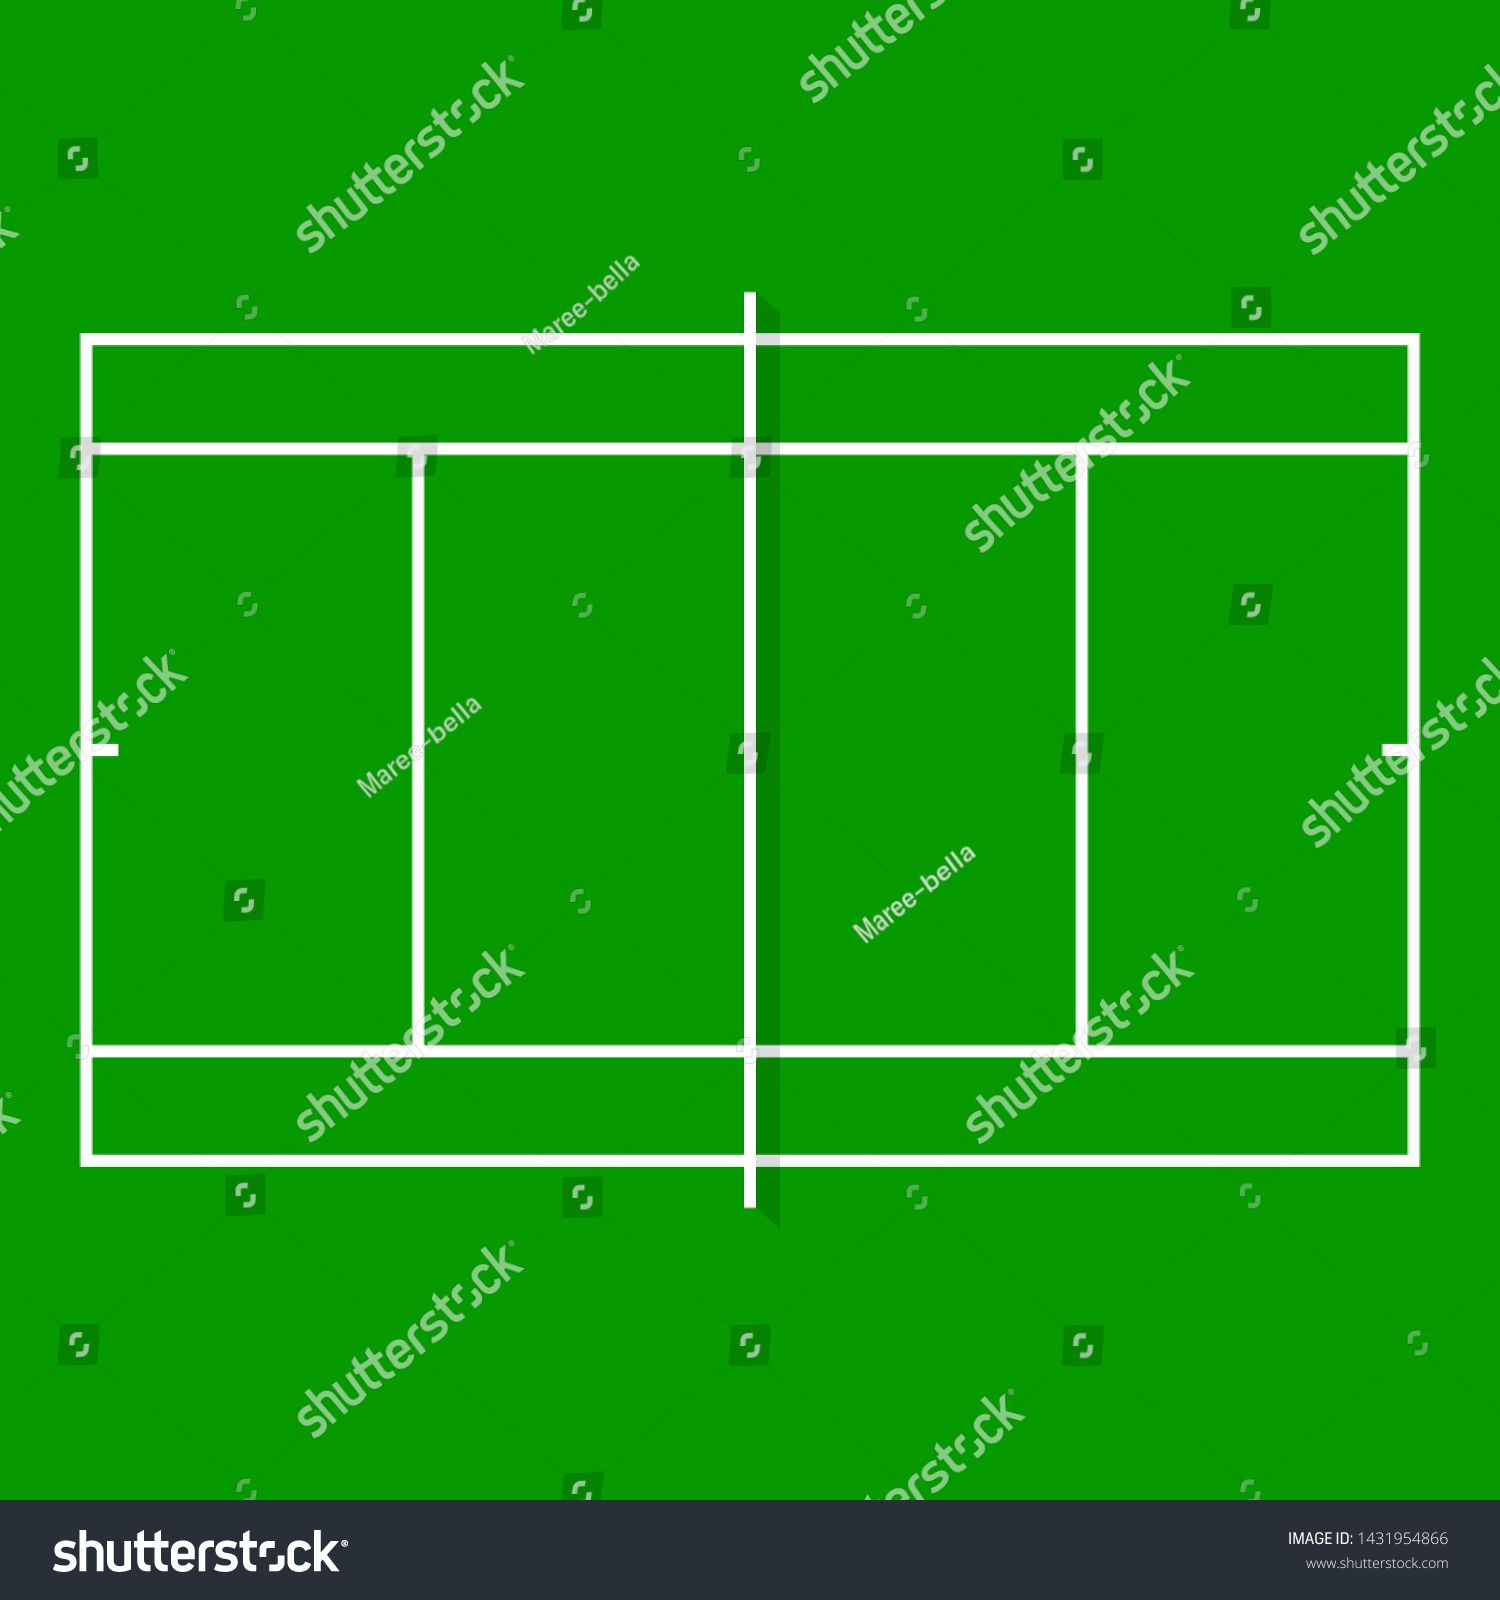 Tennis Court Icon Flat Style Tennis Field With Exact Proportions Sport Vector Illustration Ad Sponsored Flat Style Icon Tennis